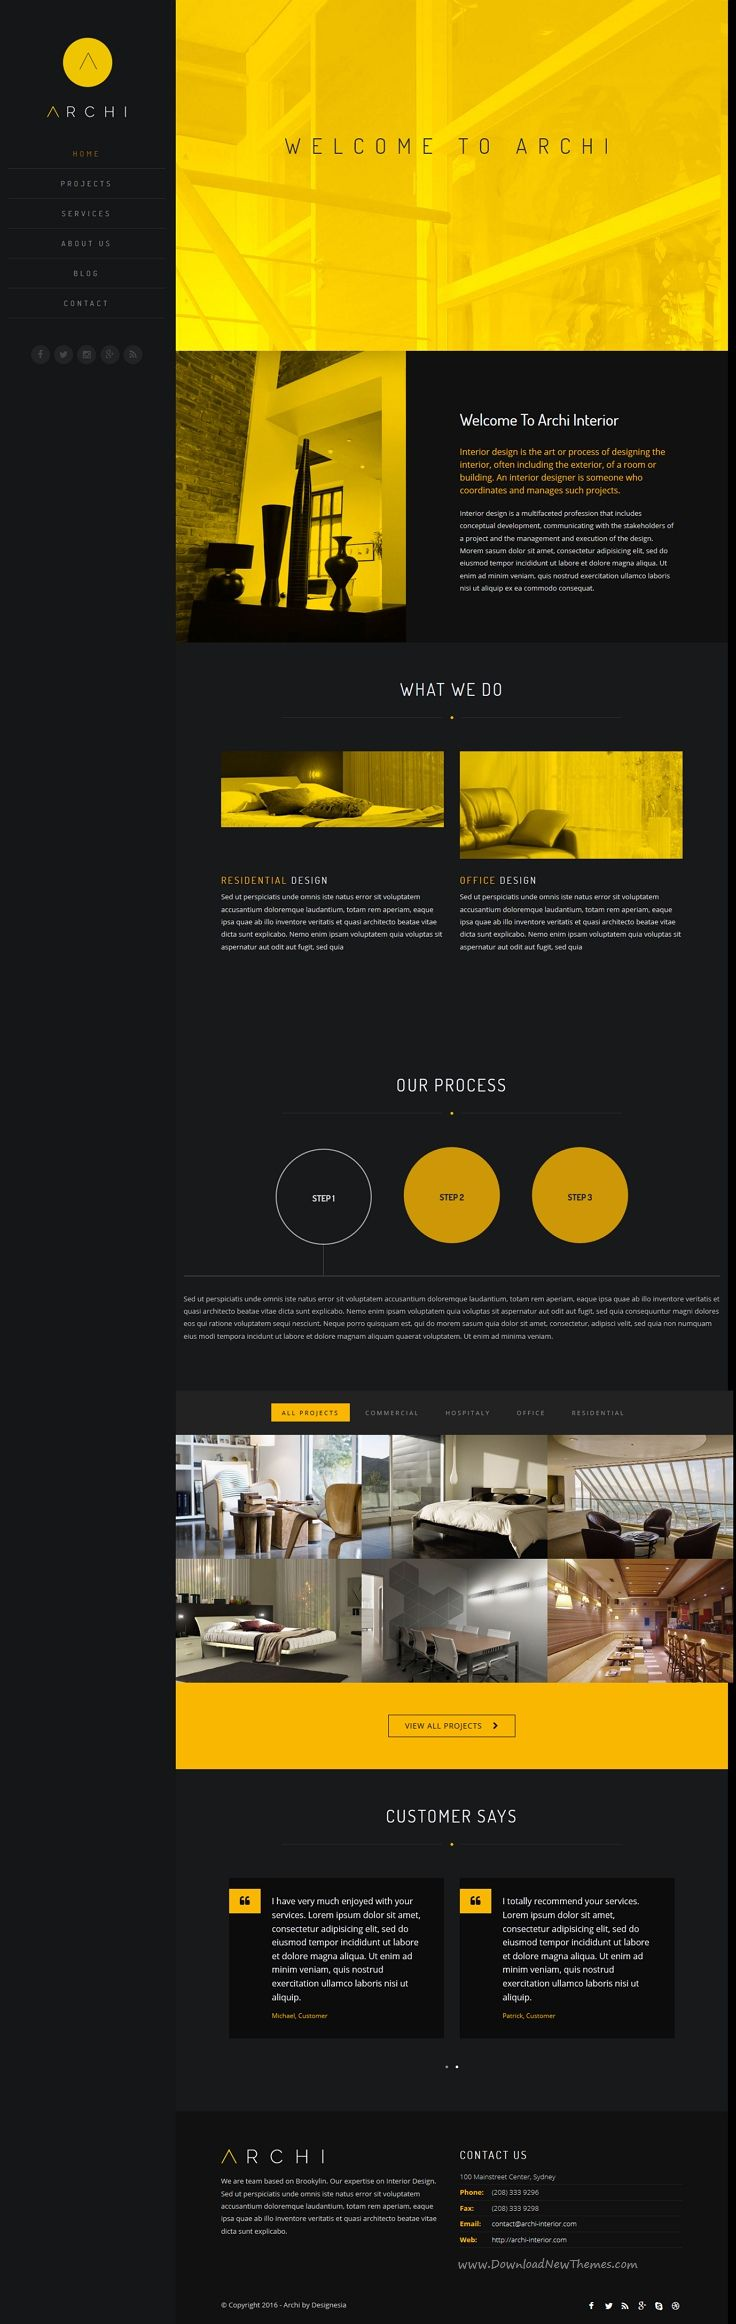 Best 25 Interior Design Portfolios Ideas On Pinterest Interior Design Resume Portfolio